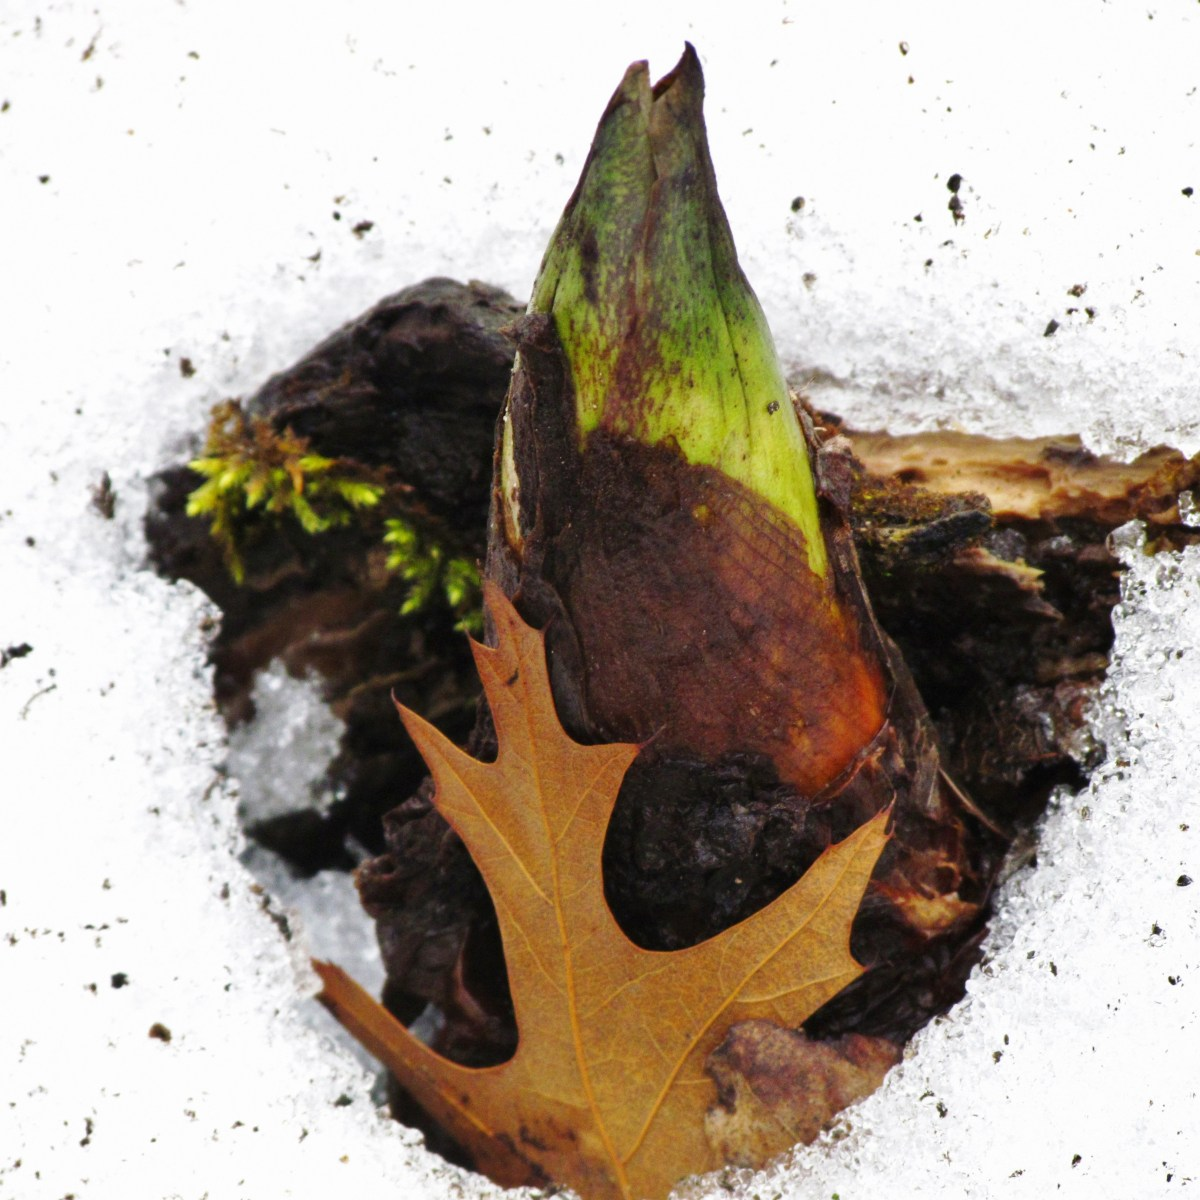 A skunk cabbage plant pushes through the snow